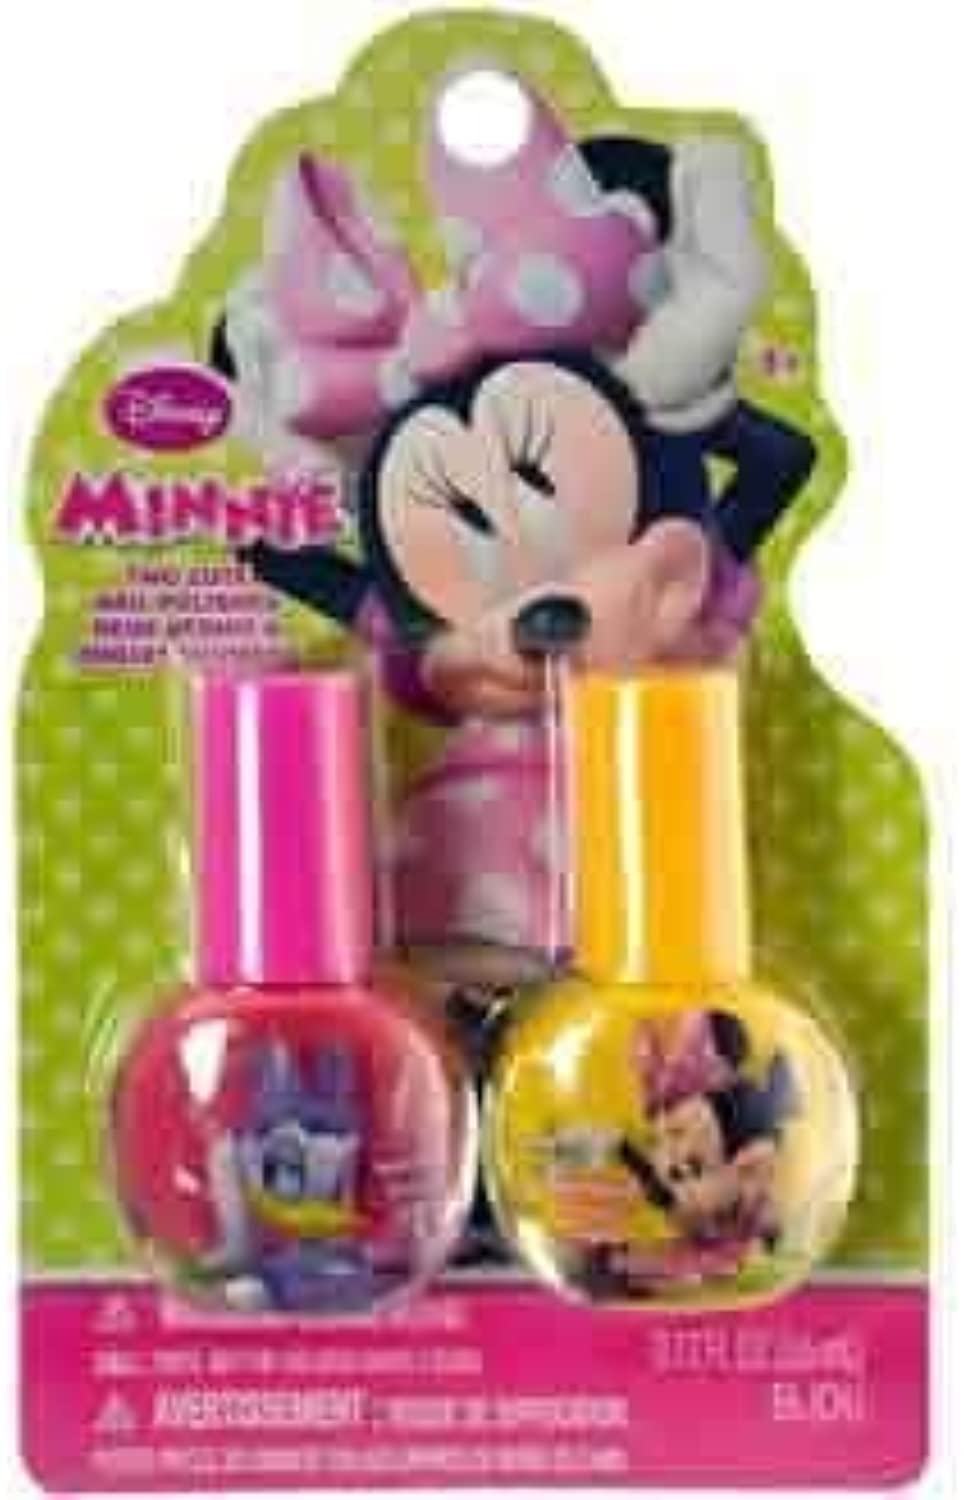 Minnie Mouse Nail Polish 2pc [6 Retail Unit(s) Pack] - MB0278SA by UP